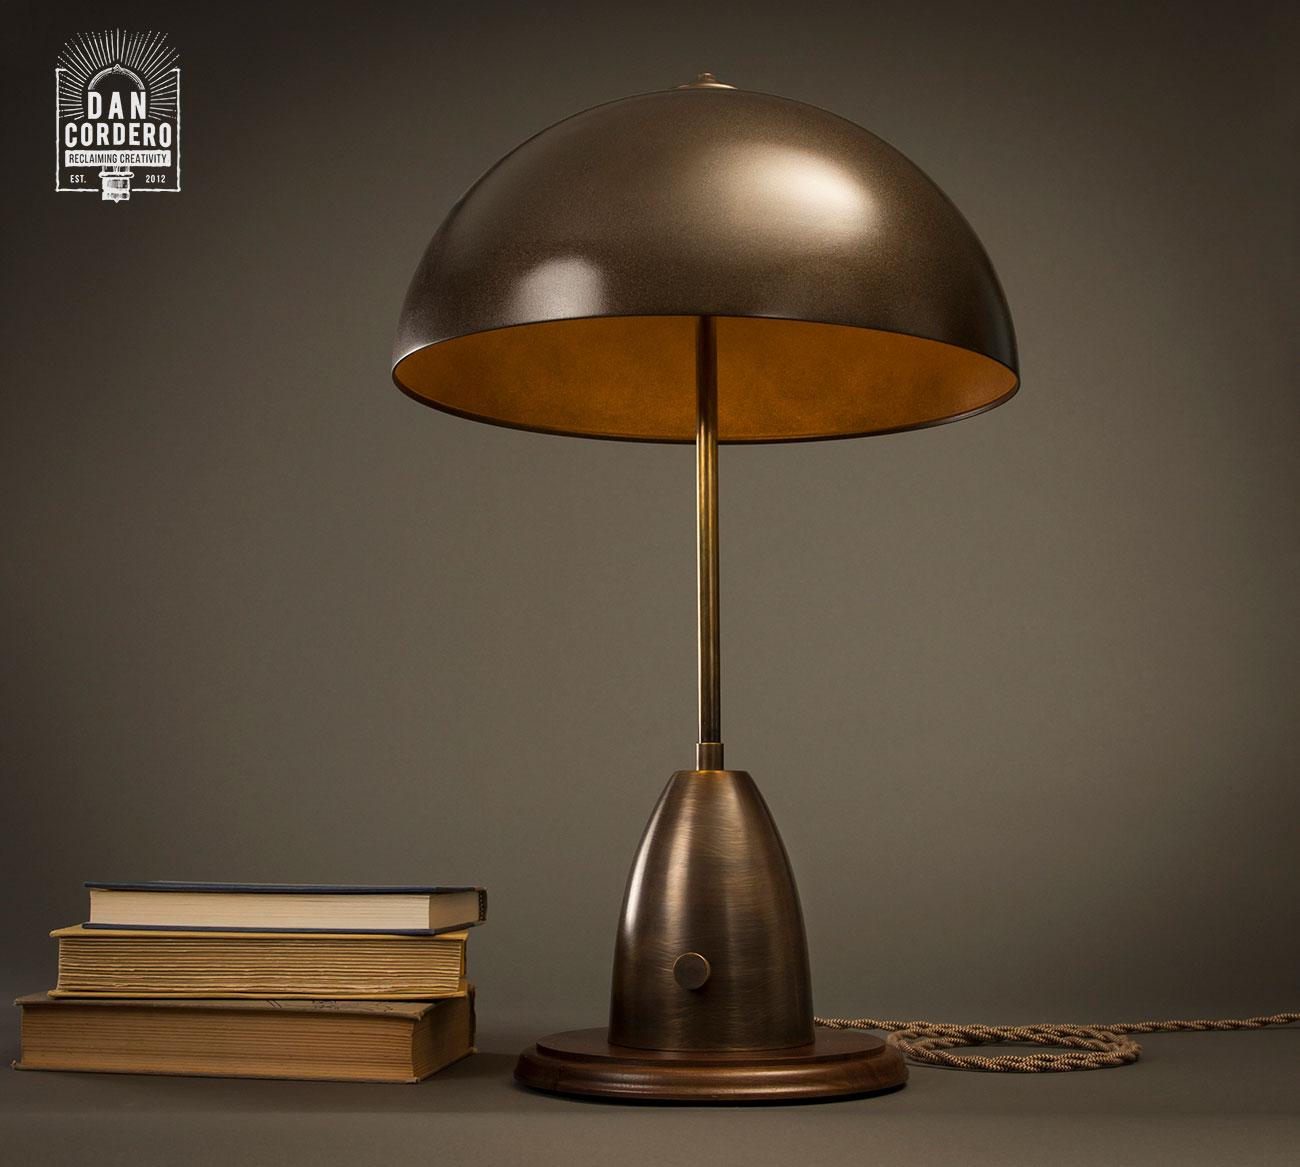 Aged Brass Dome Table Lamp Desk Lamp Industrial Lamp